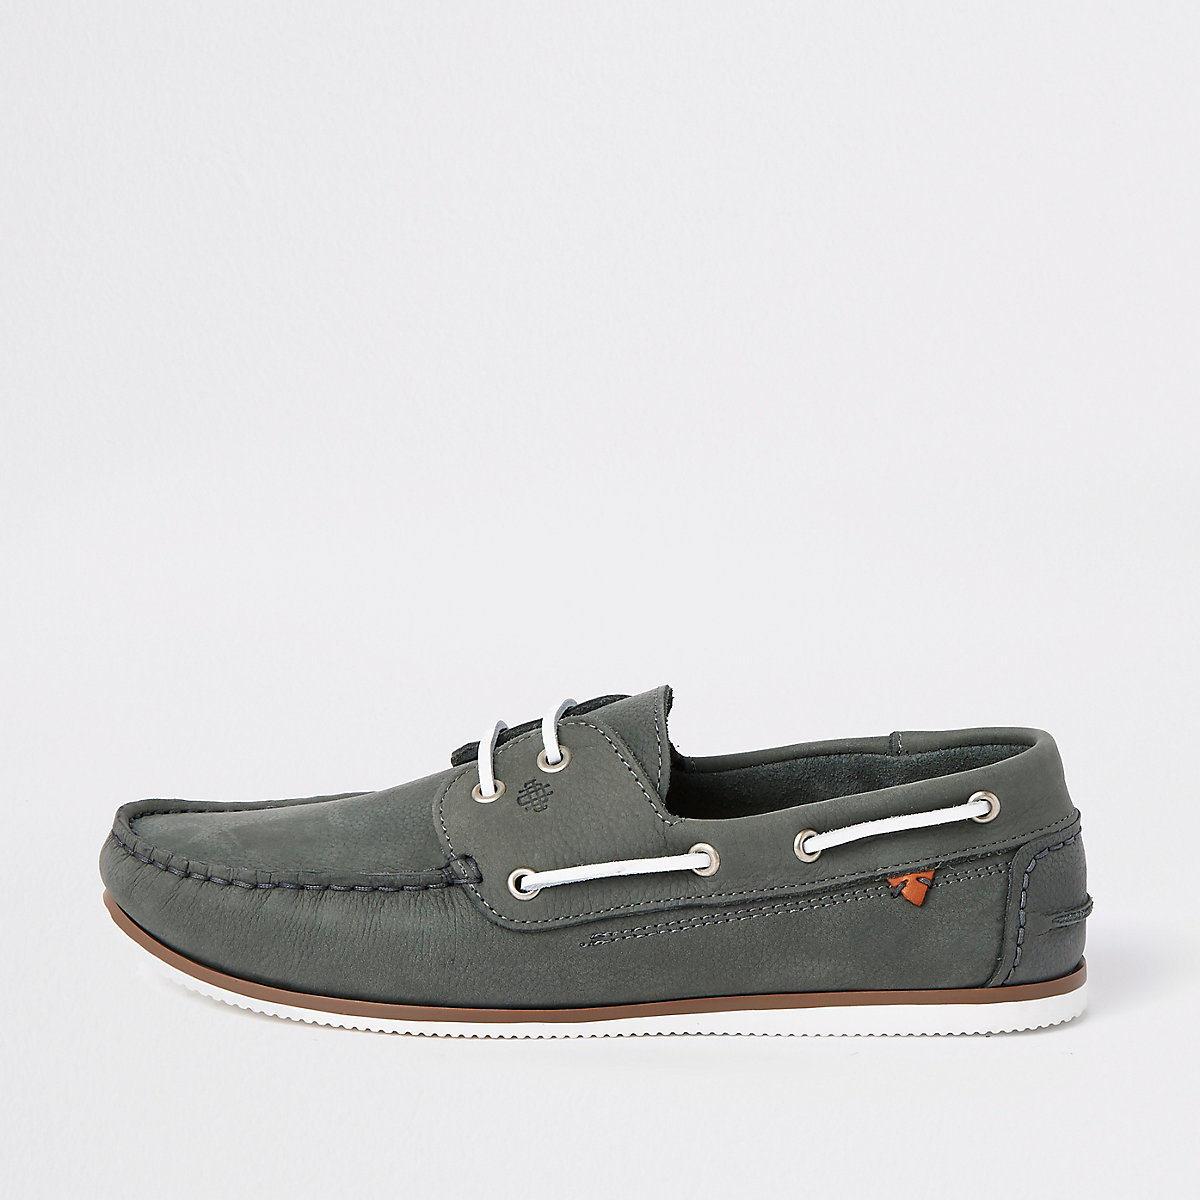 Grey tumbled leather boat shoes